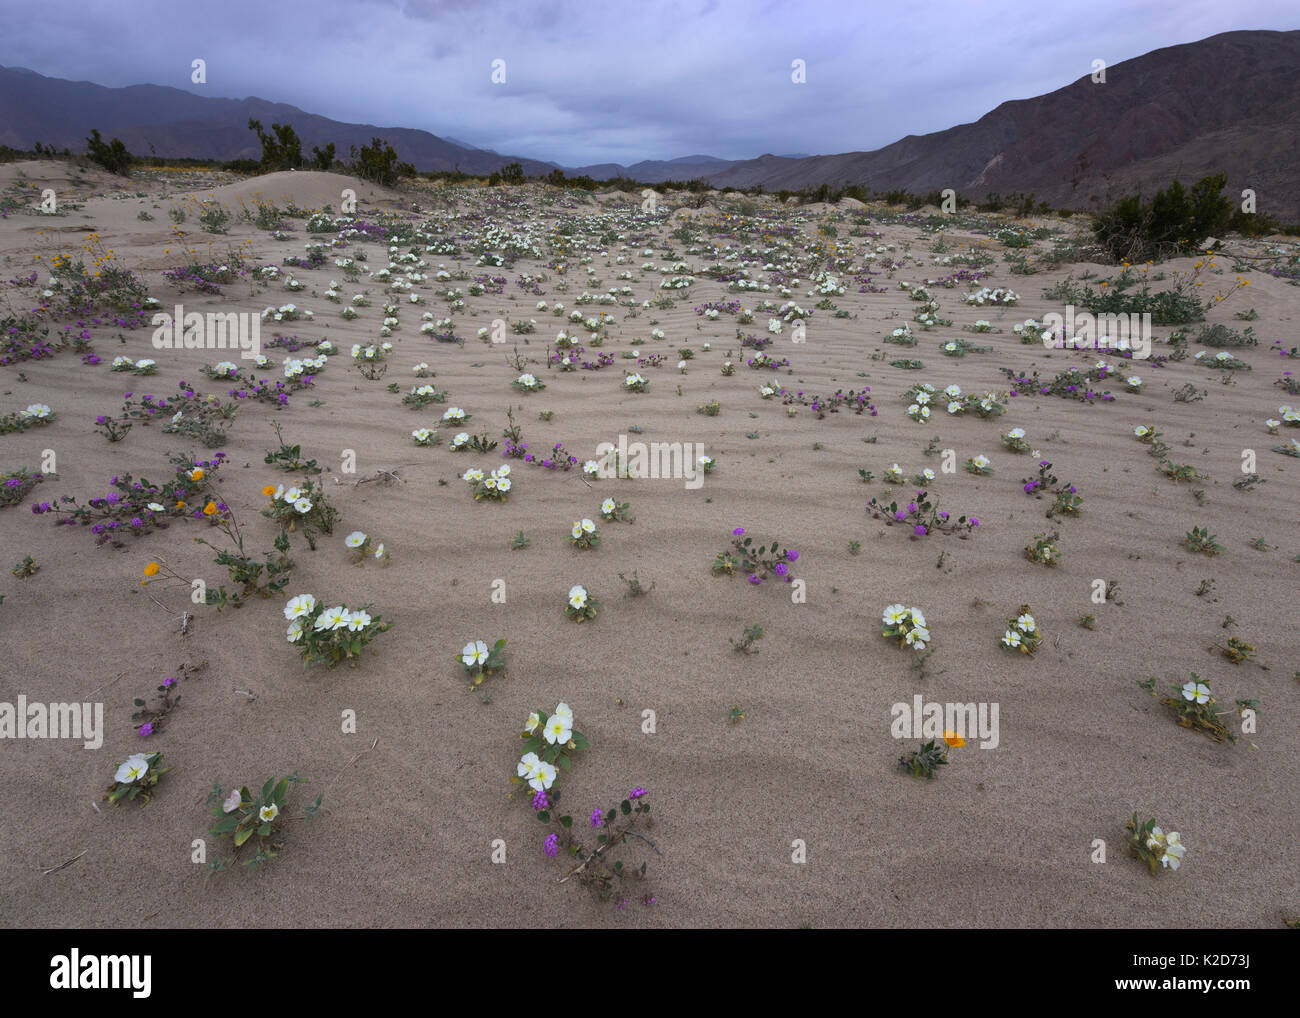 Dune primrose, Sand verbena, and Desert gold emerge from the sand after brief spring rains in Anza-Borrego Desert State Park, California, USA March - Stock Image